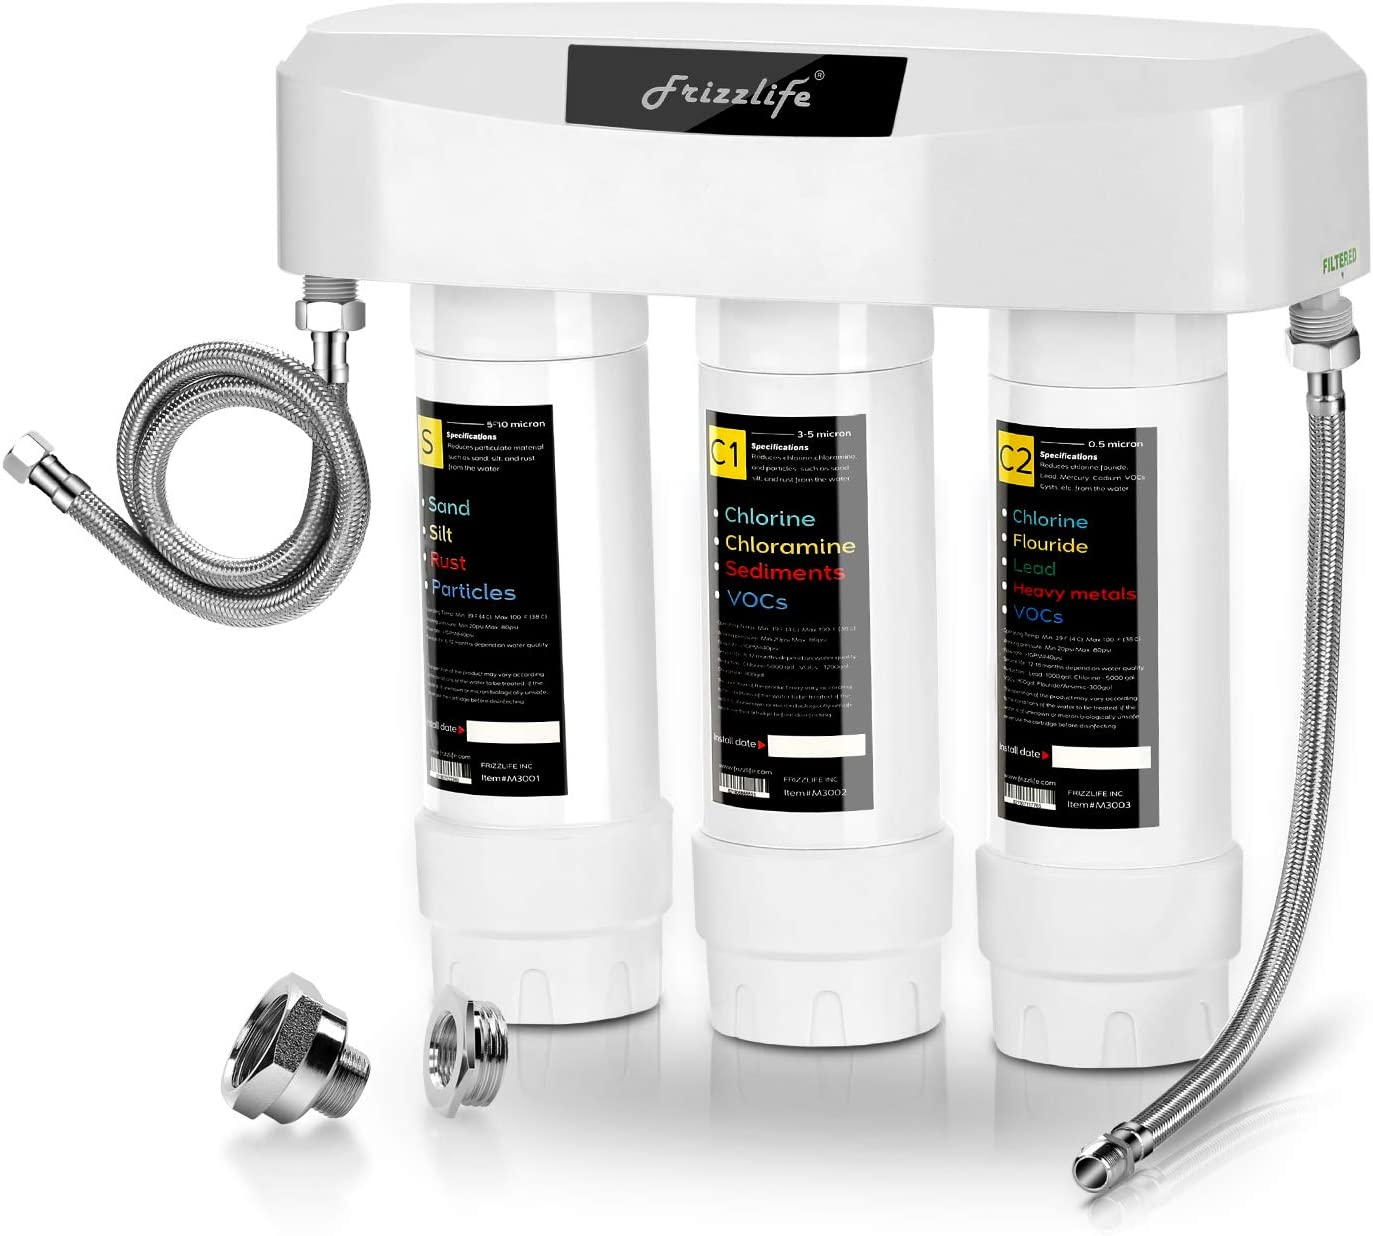 Frizzlife SK99 3-Stage Under Sink Water Filter Reviews